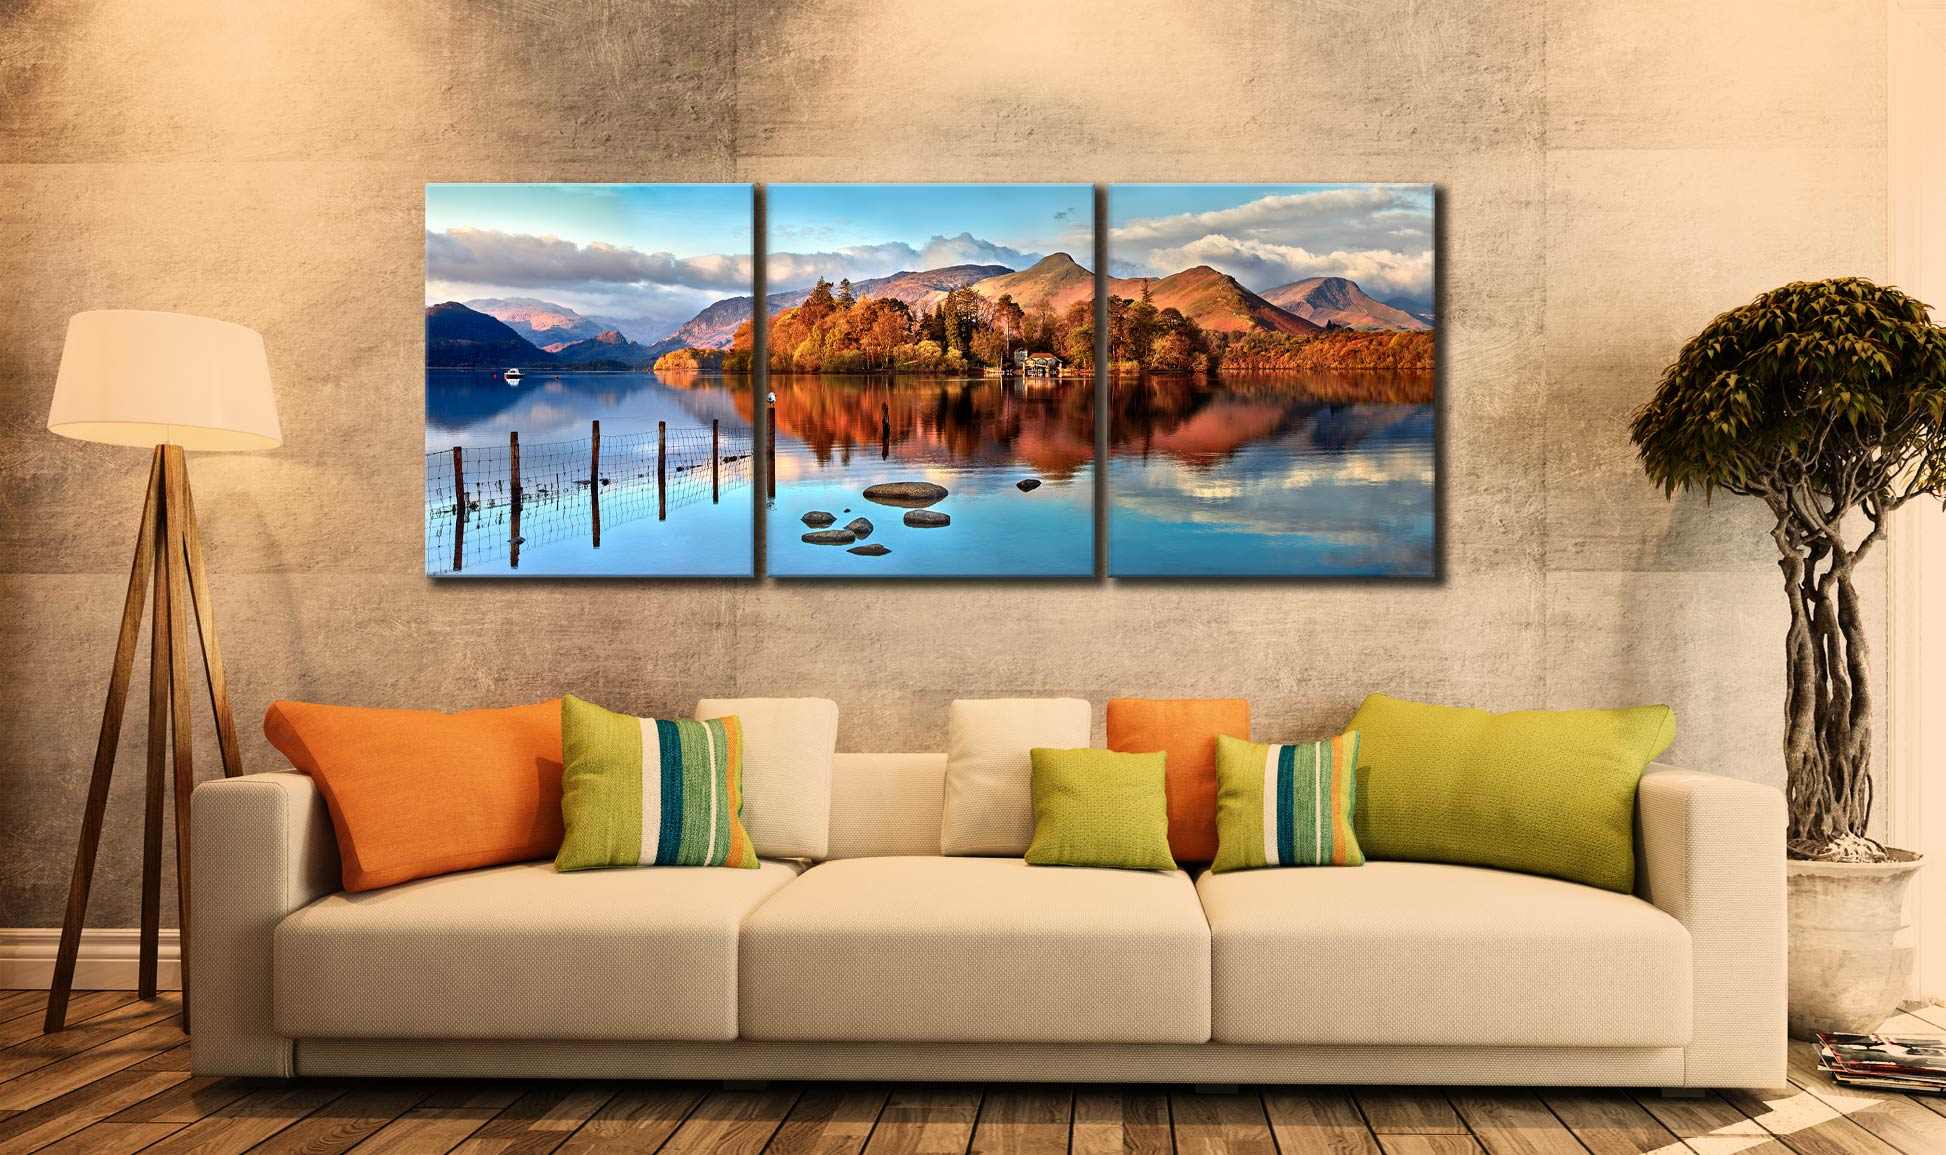 Derwent Water Panorama - UltraHD Print with Aluminium Backing on Wall